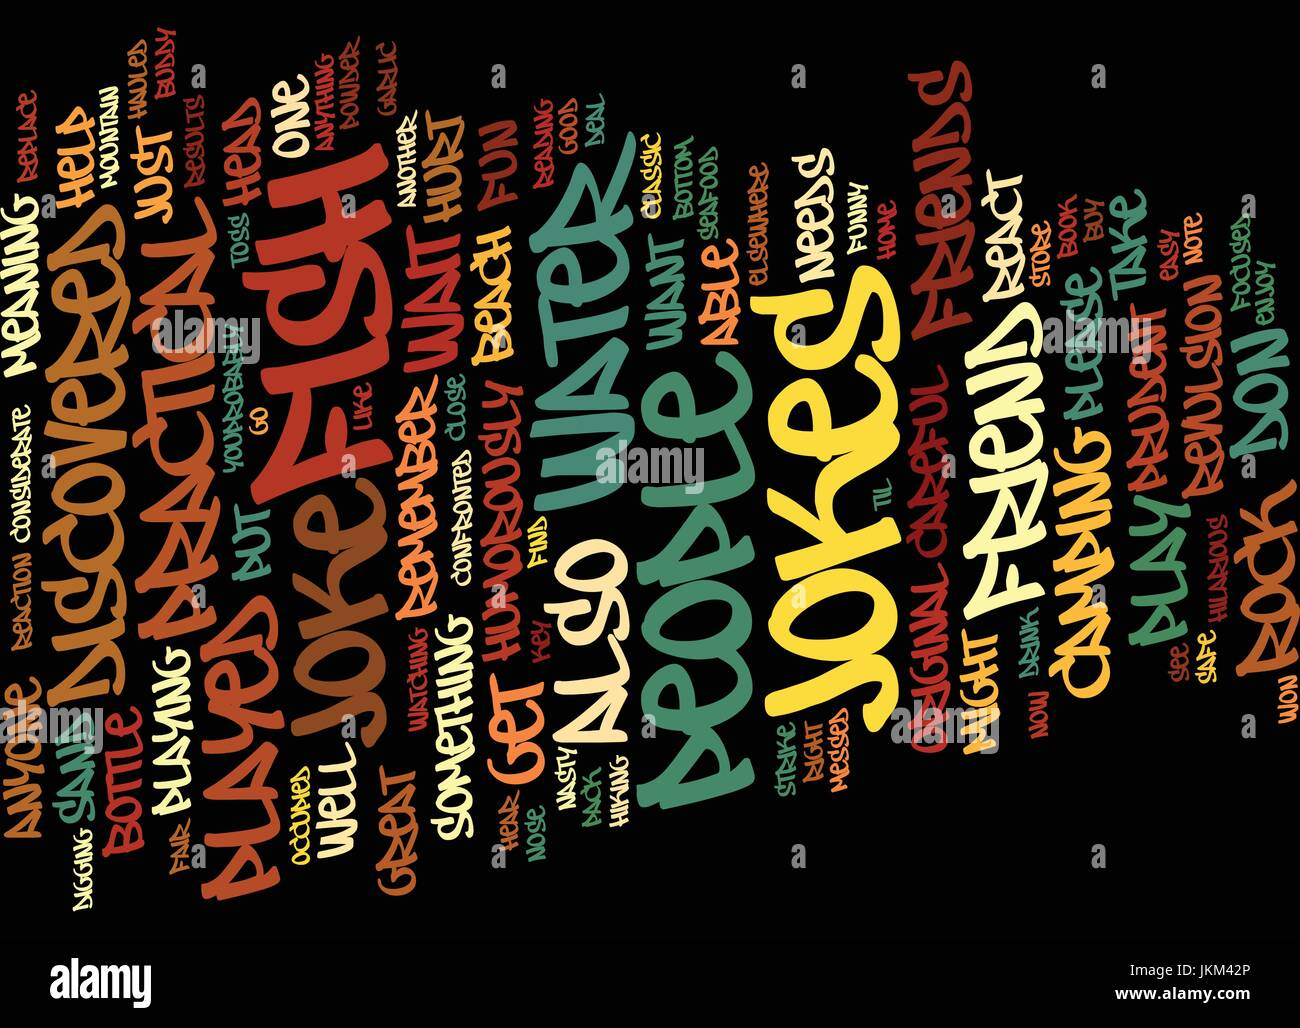 GREAT PRACTICAL JOKES TO PLAY ON YOUR FRIENDS Text Background Word Cloud Concept - Stock Image